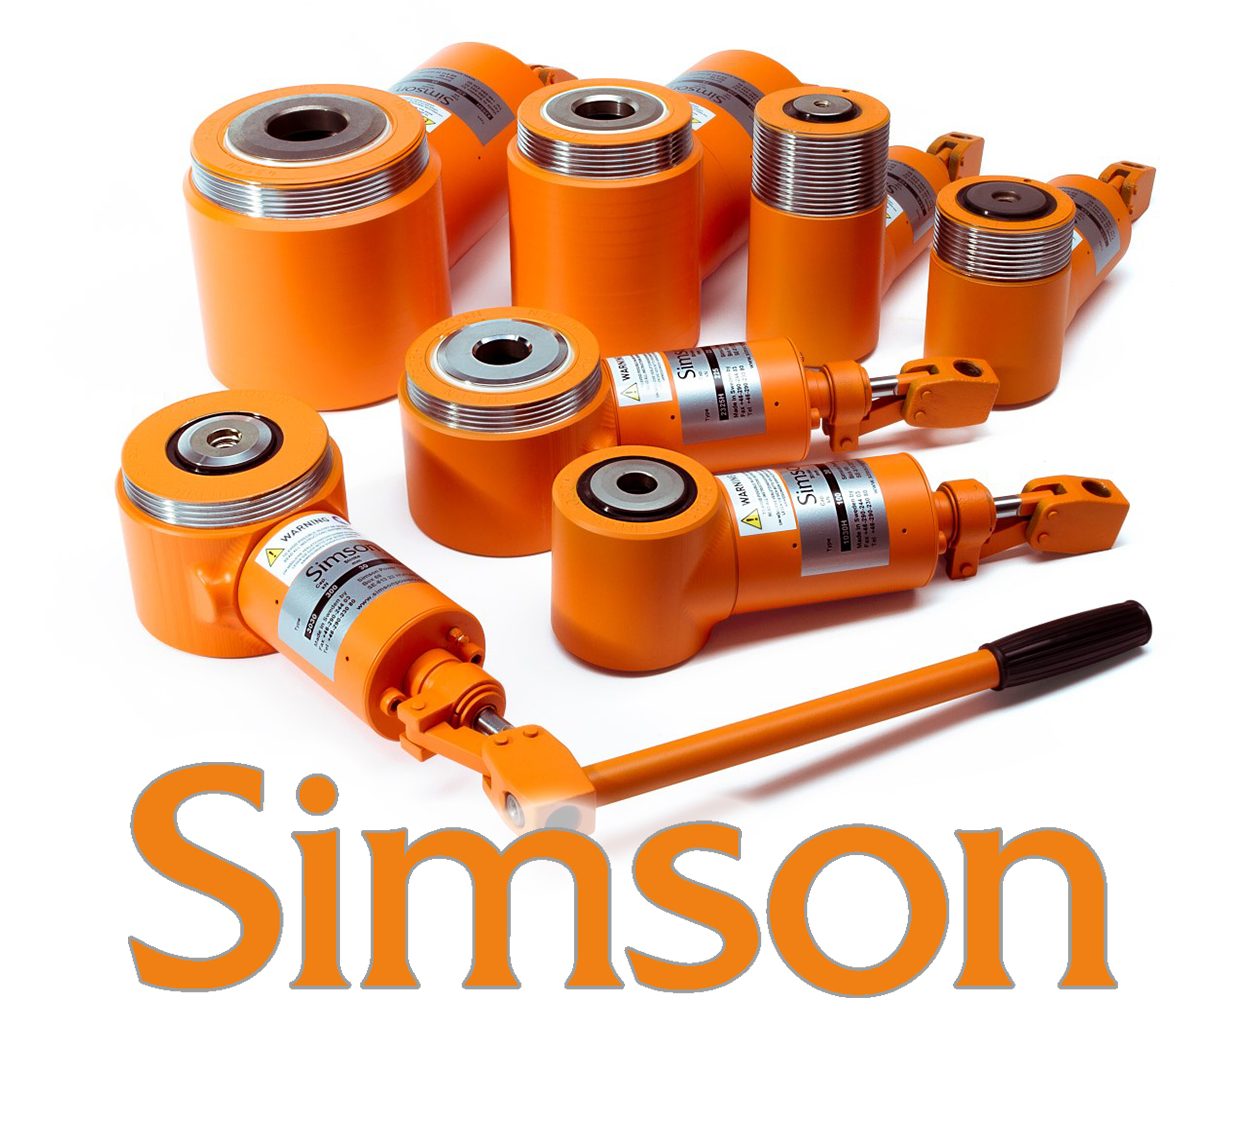 Simson Power Tools